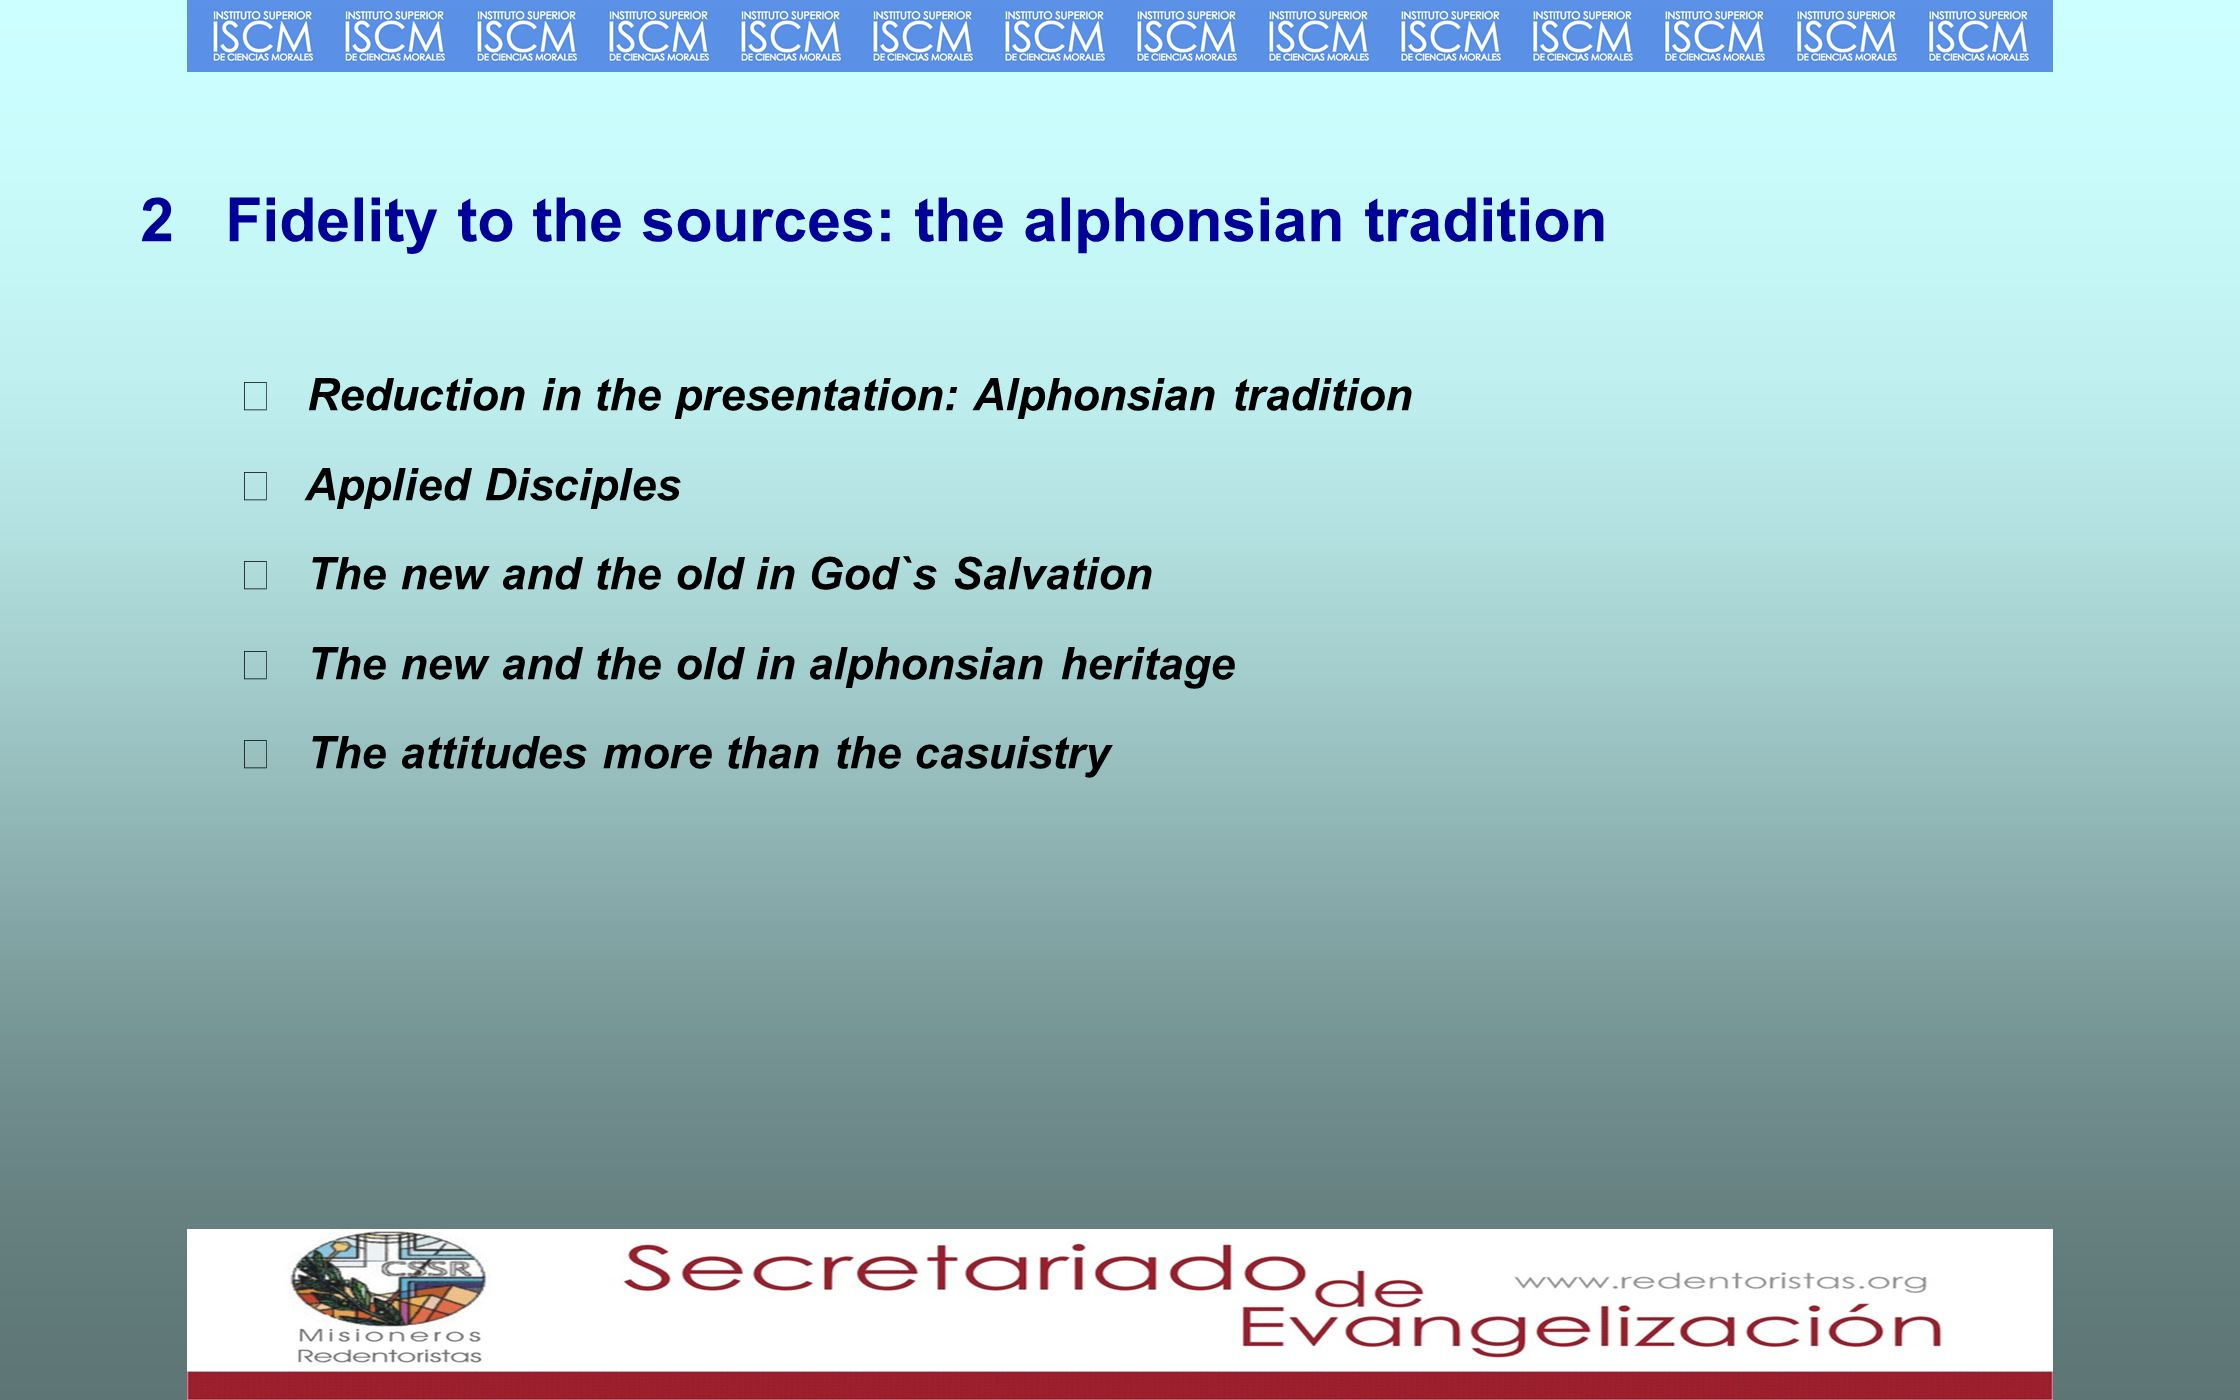 2 Fidelity to the sources: the alphonsian tradition Reduction in the presentation: Alphonsian tradition Applied Disciples The new and the old in God`s Salvation The new and the old in alphonsian heritage The attitudes more than the casuistry